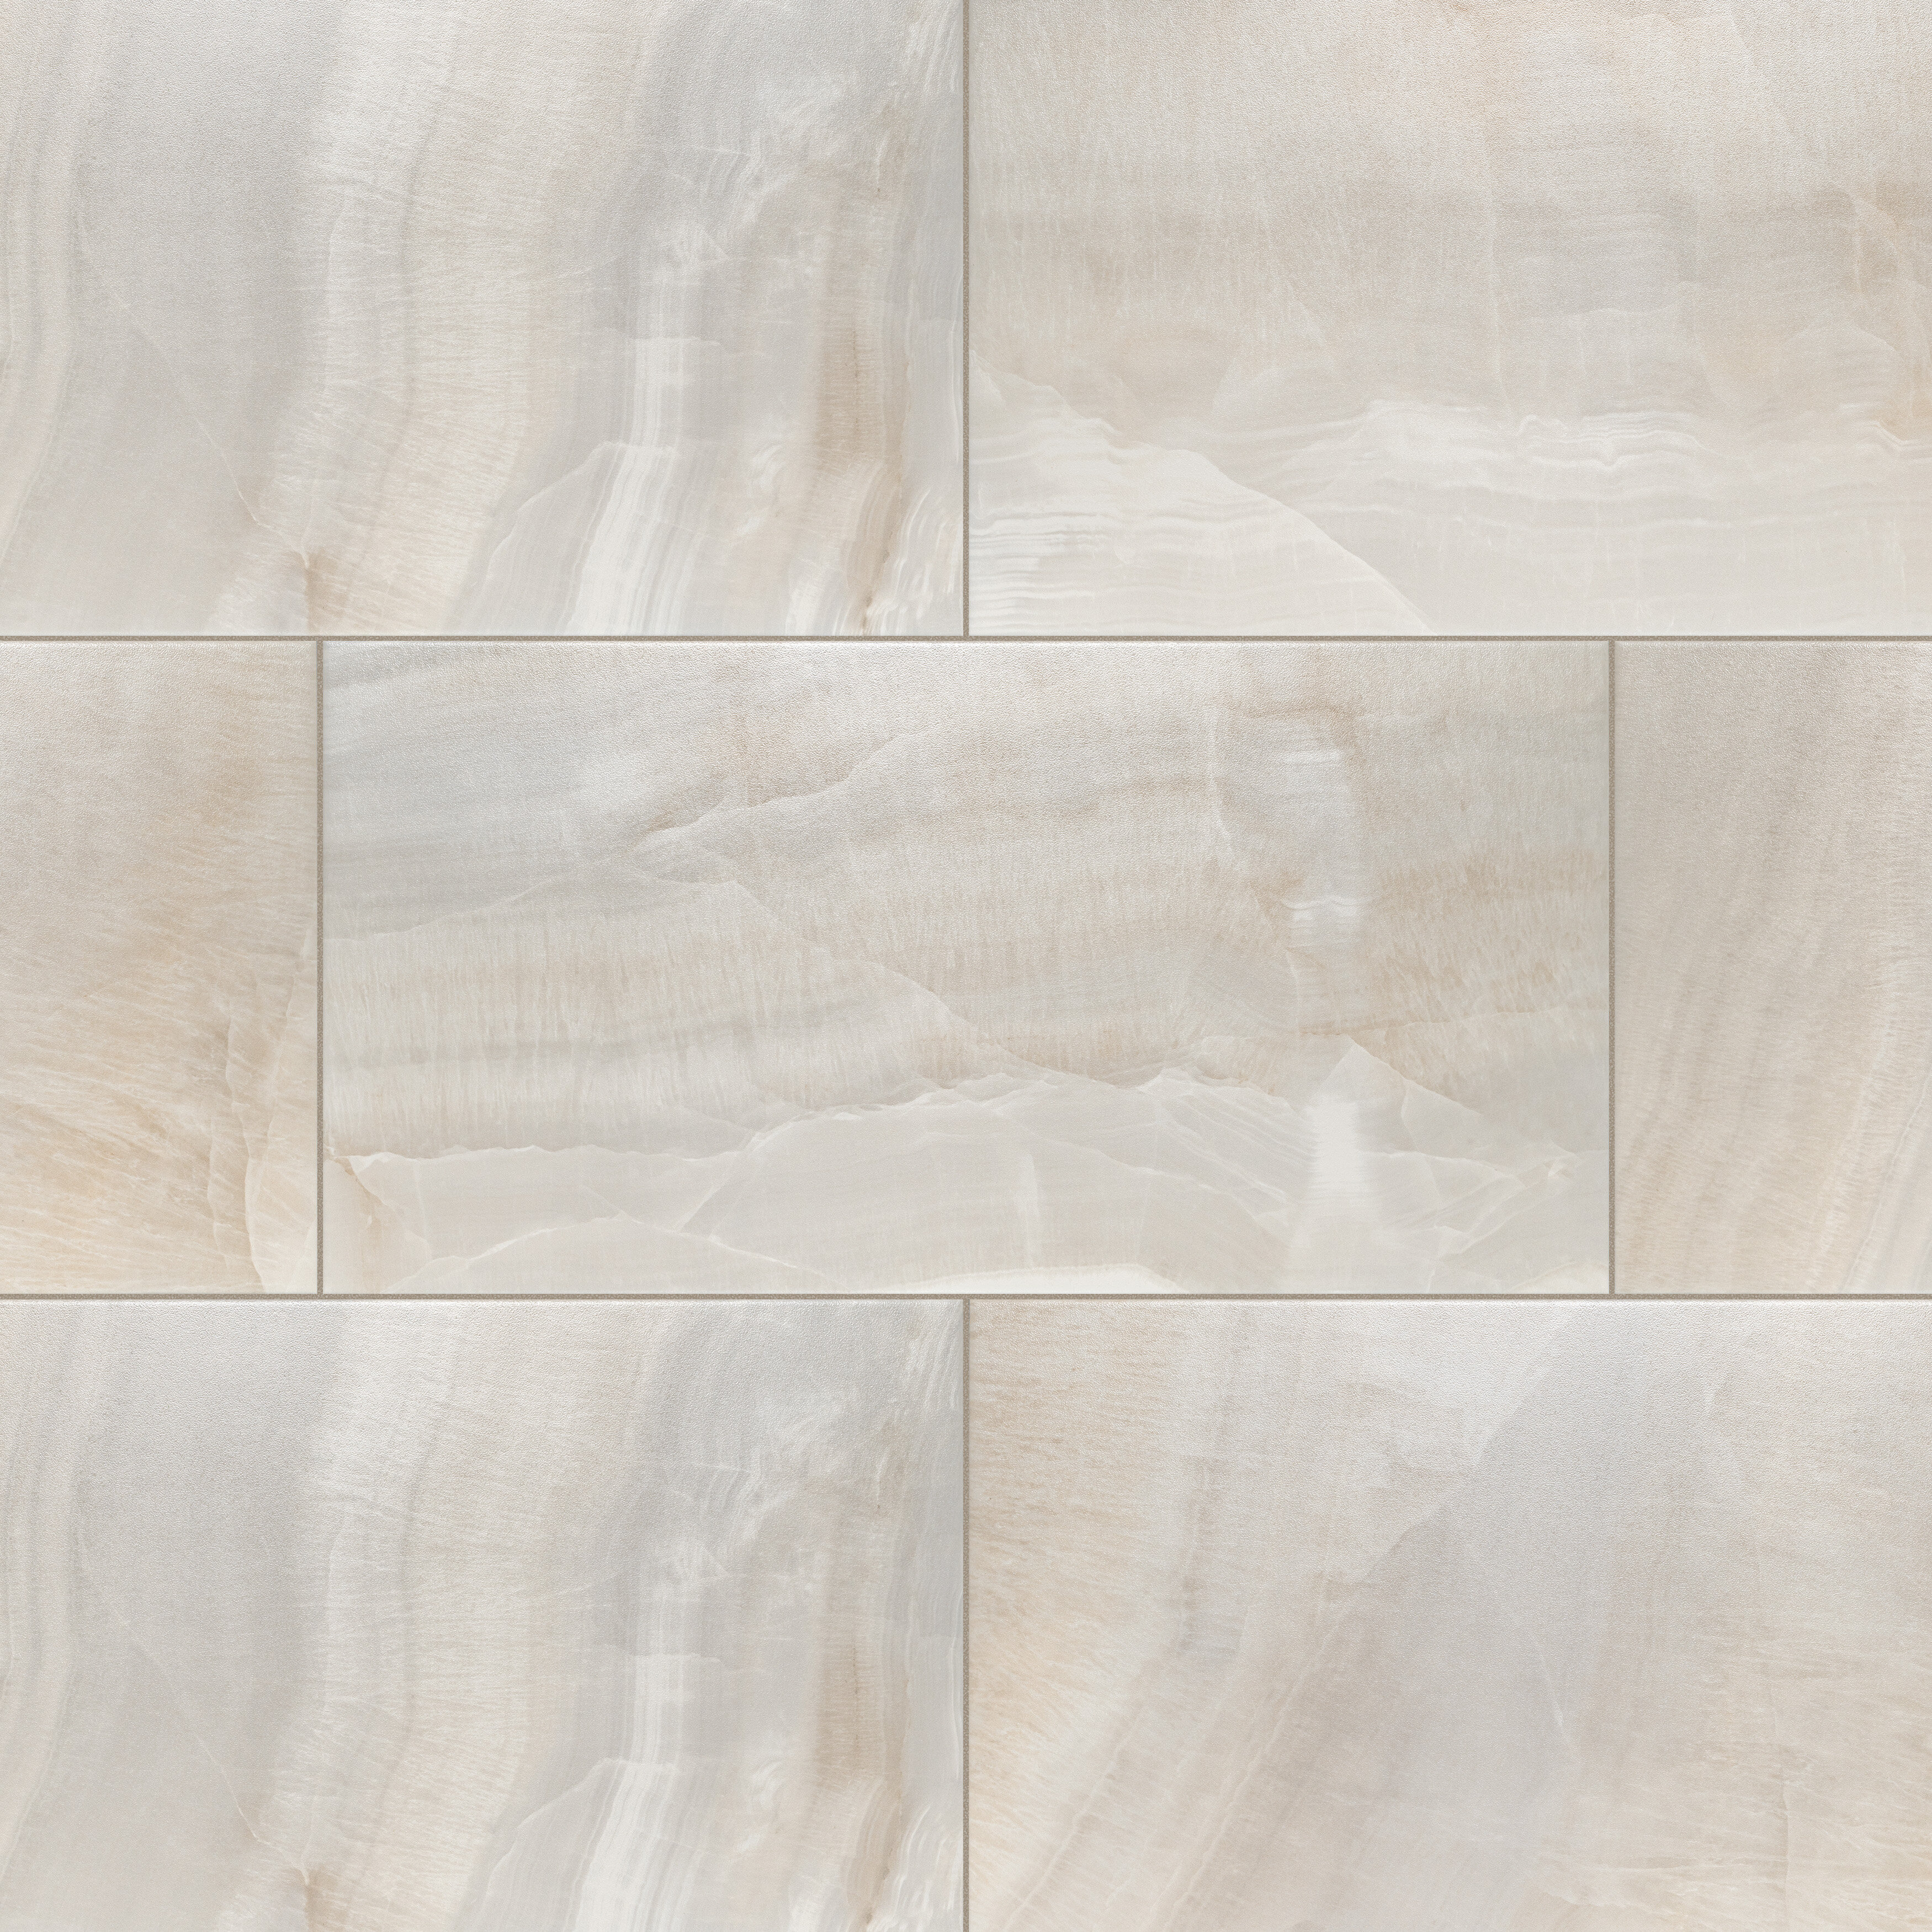 Elitetile Dhabi 13 X 25 Porcelain Wall Floor Tile Wayfair